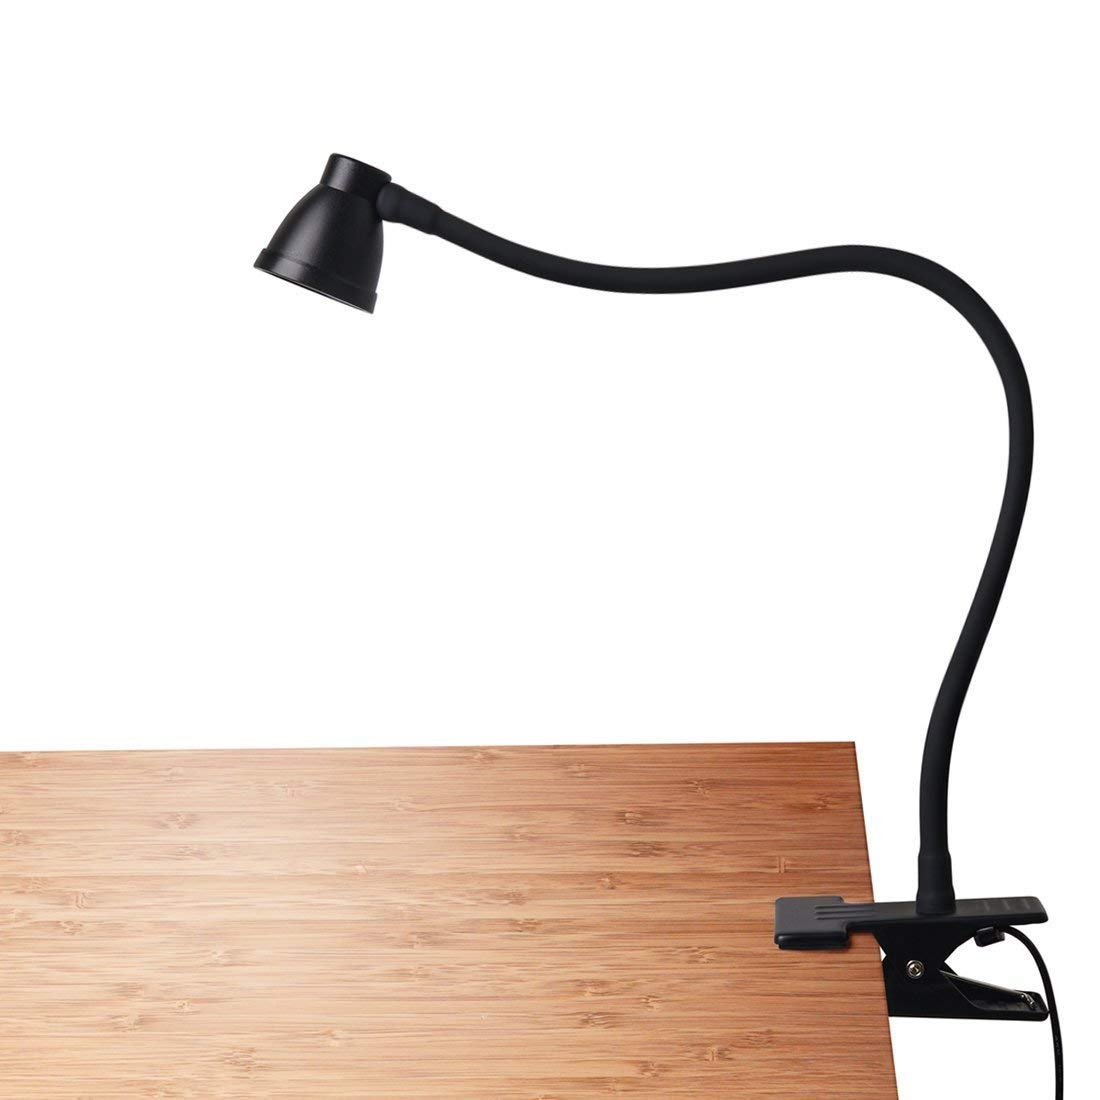 CeSunlight Clamp Desk Lamp, Clip on Reading Light, 3000-6500K Adjustable Color Temperature, 6 Illumination Modes, 10 Led Beads, AC Adapter and USB Cord Included (Black) by CeSunlight